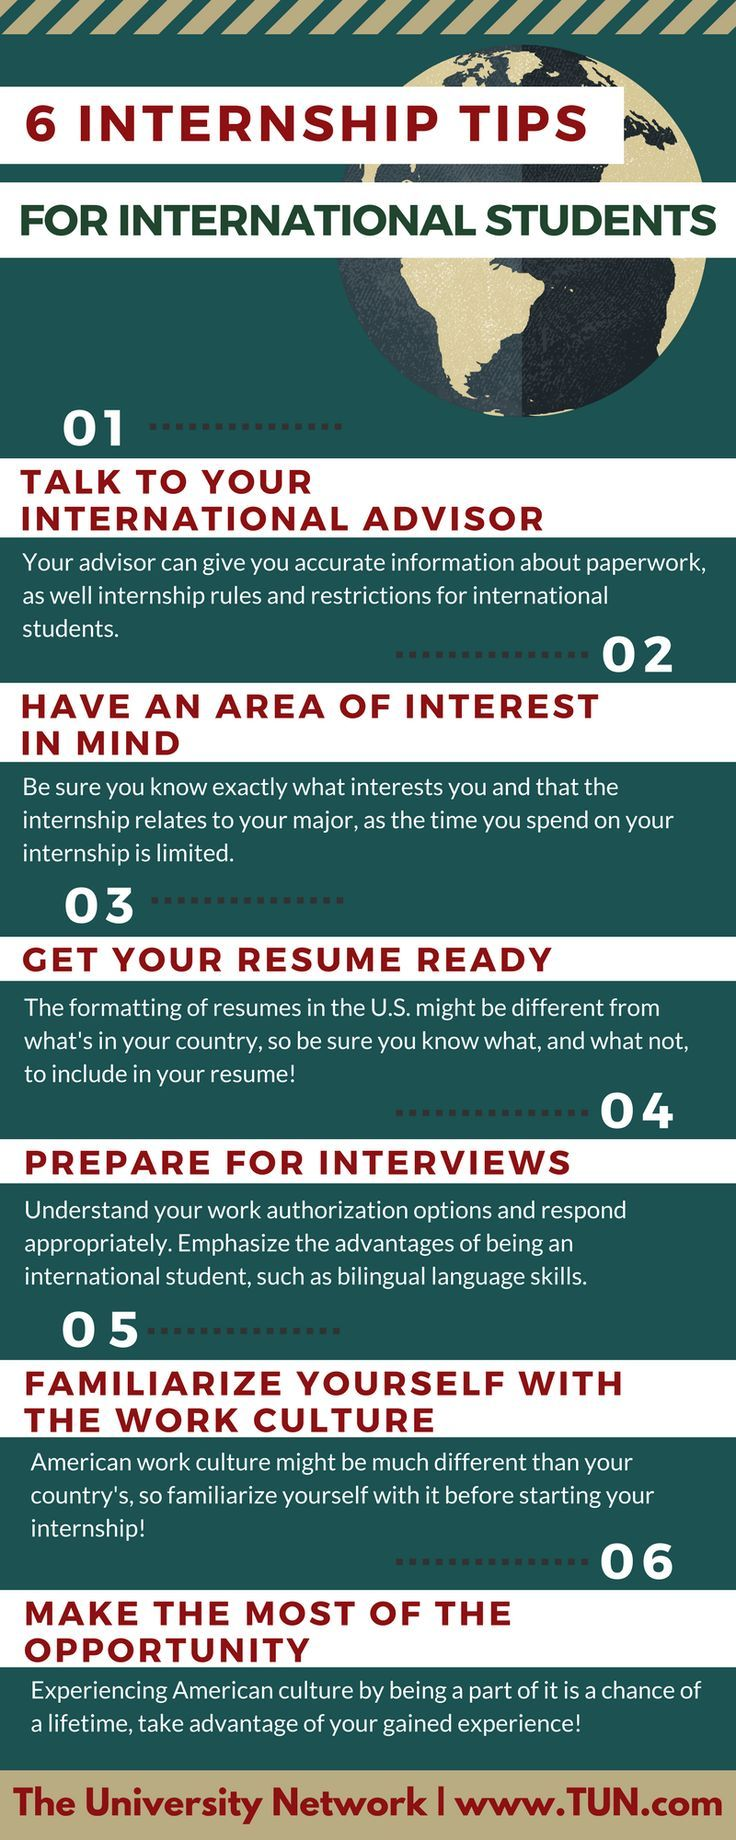 best ideas about freshman advice freshman high here are a few tips from one international student to another to keep in